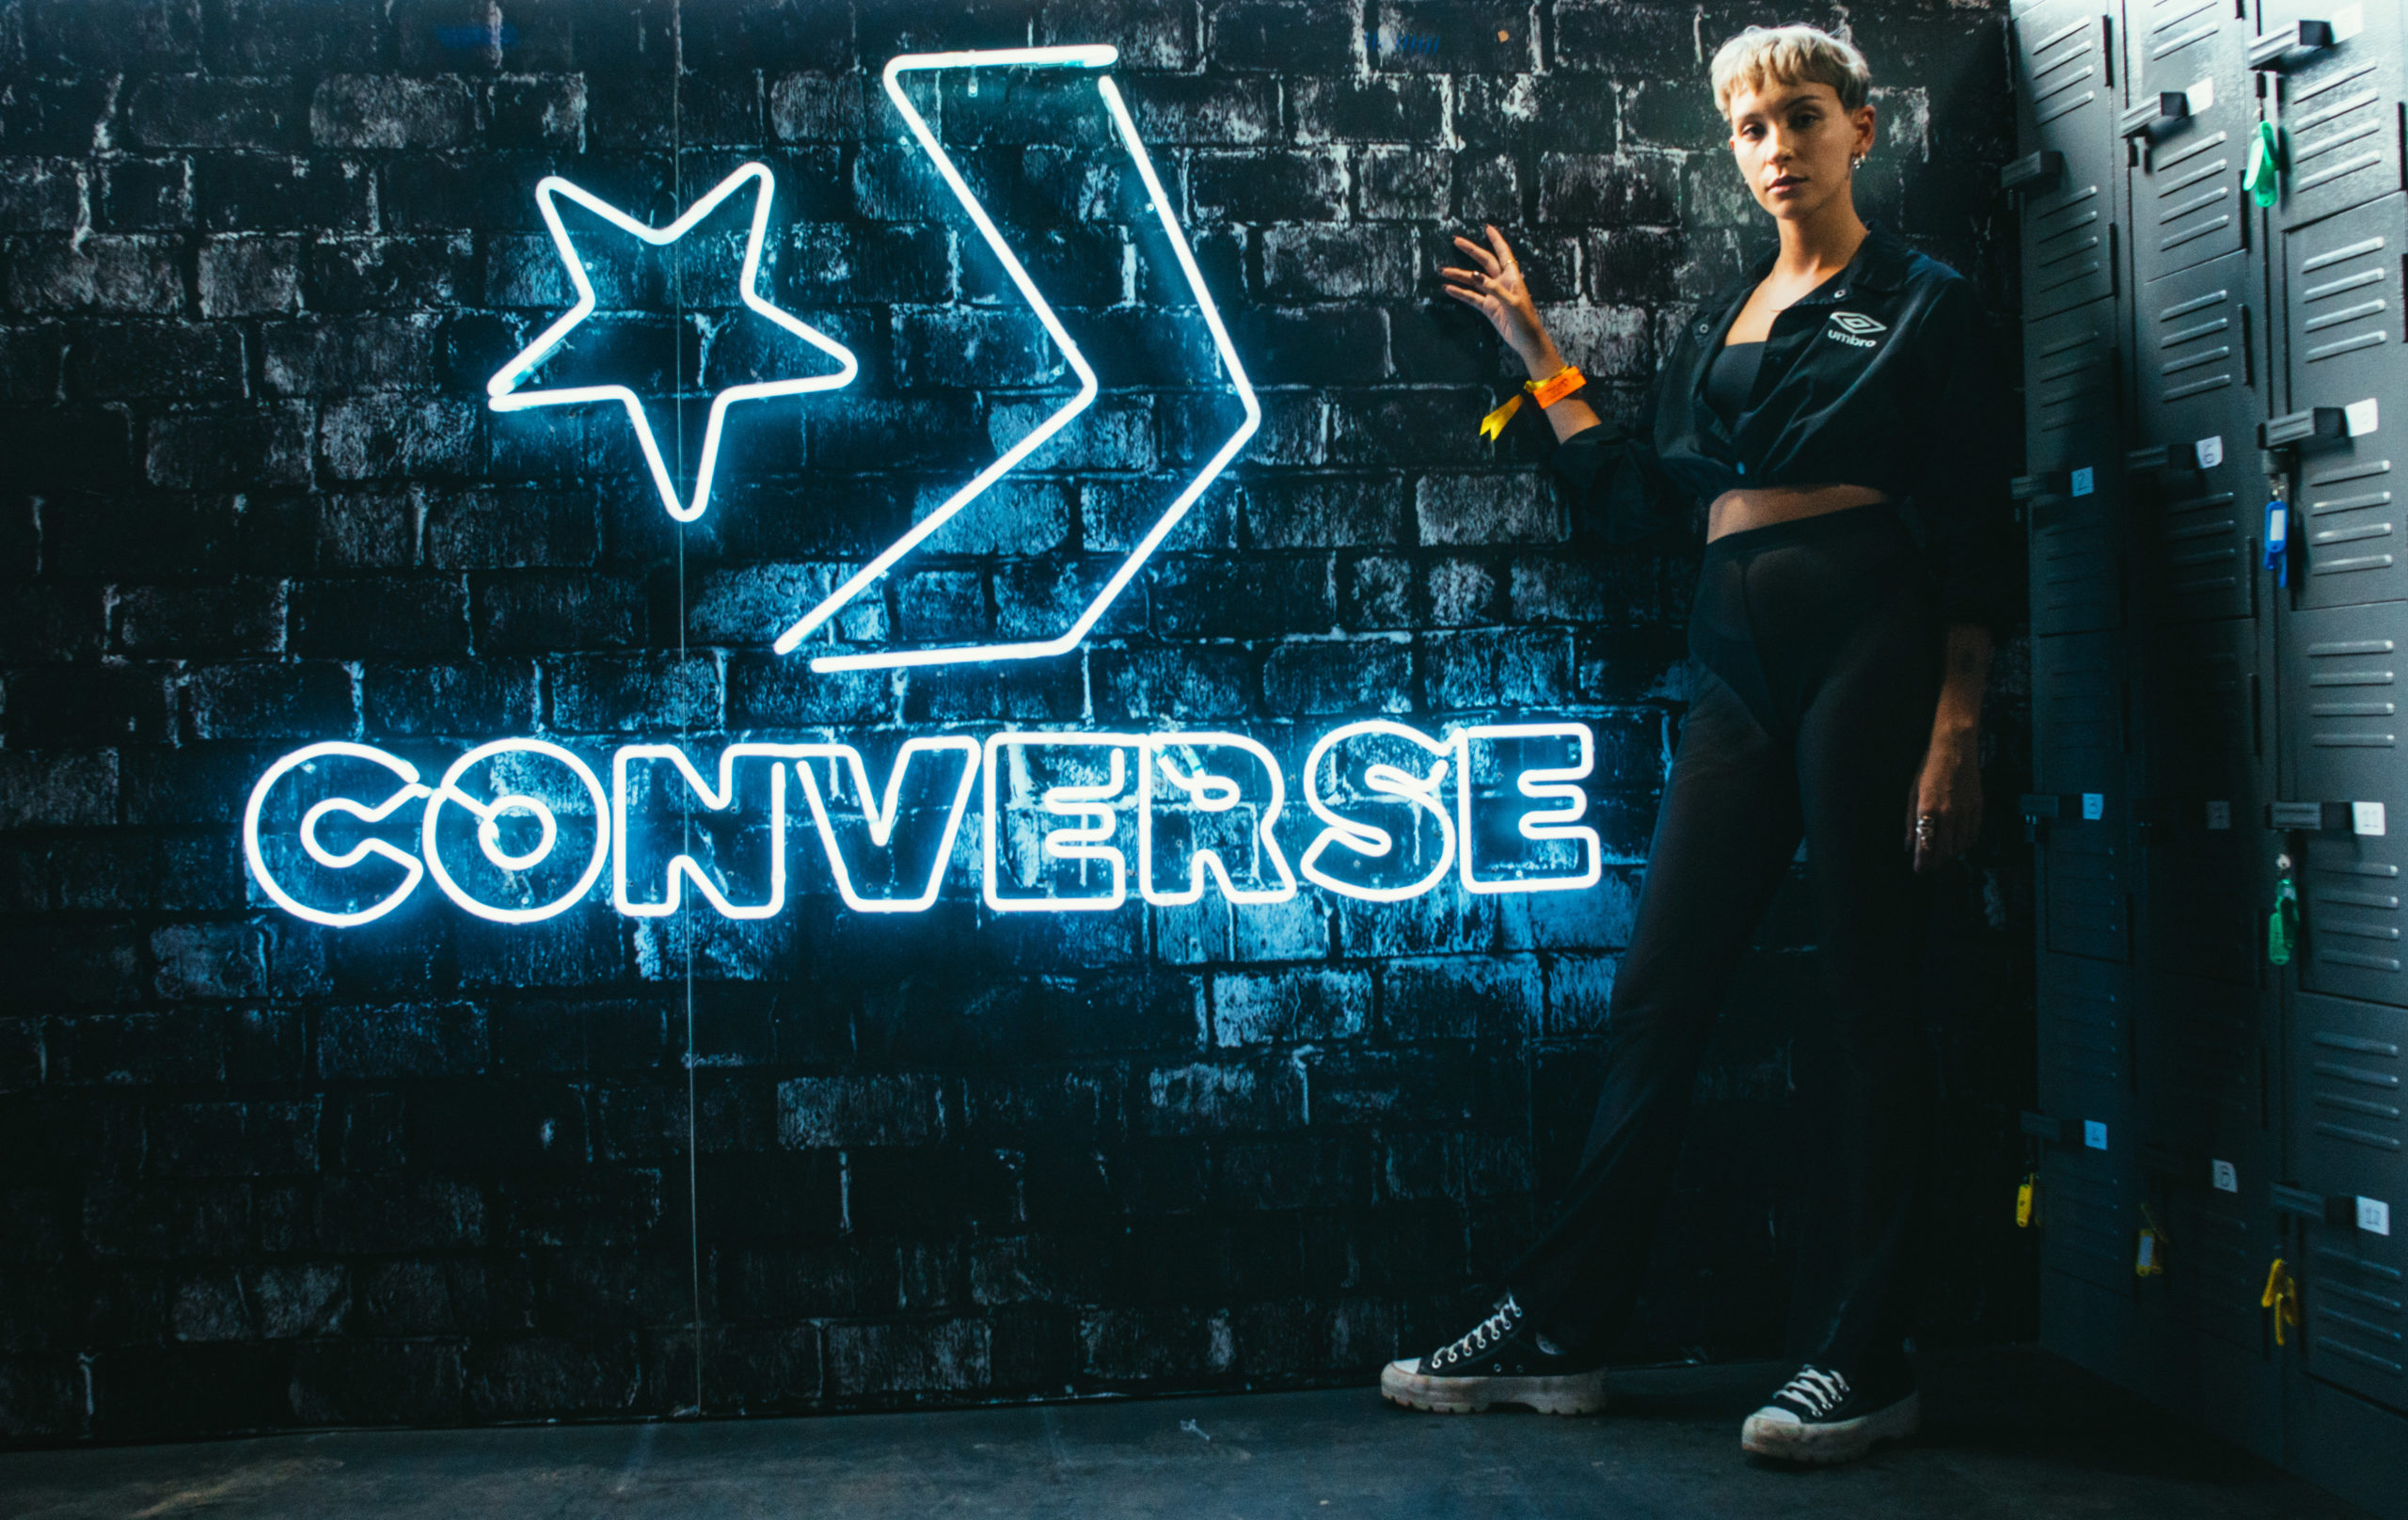 Converse's Activation Station at Cotton Fest